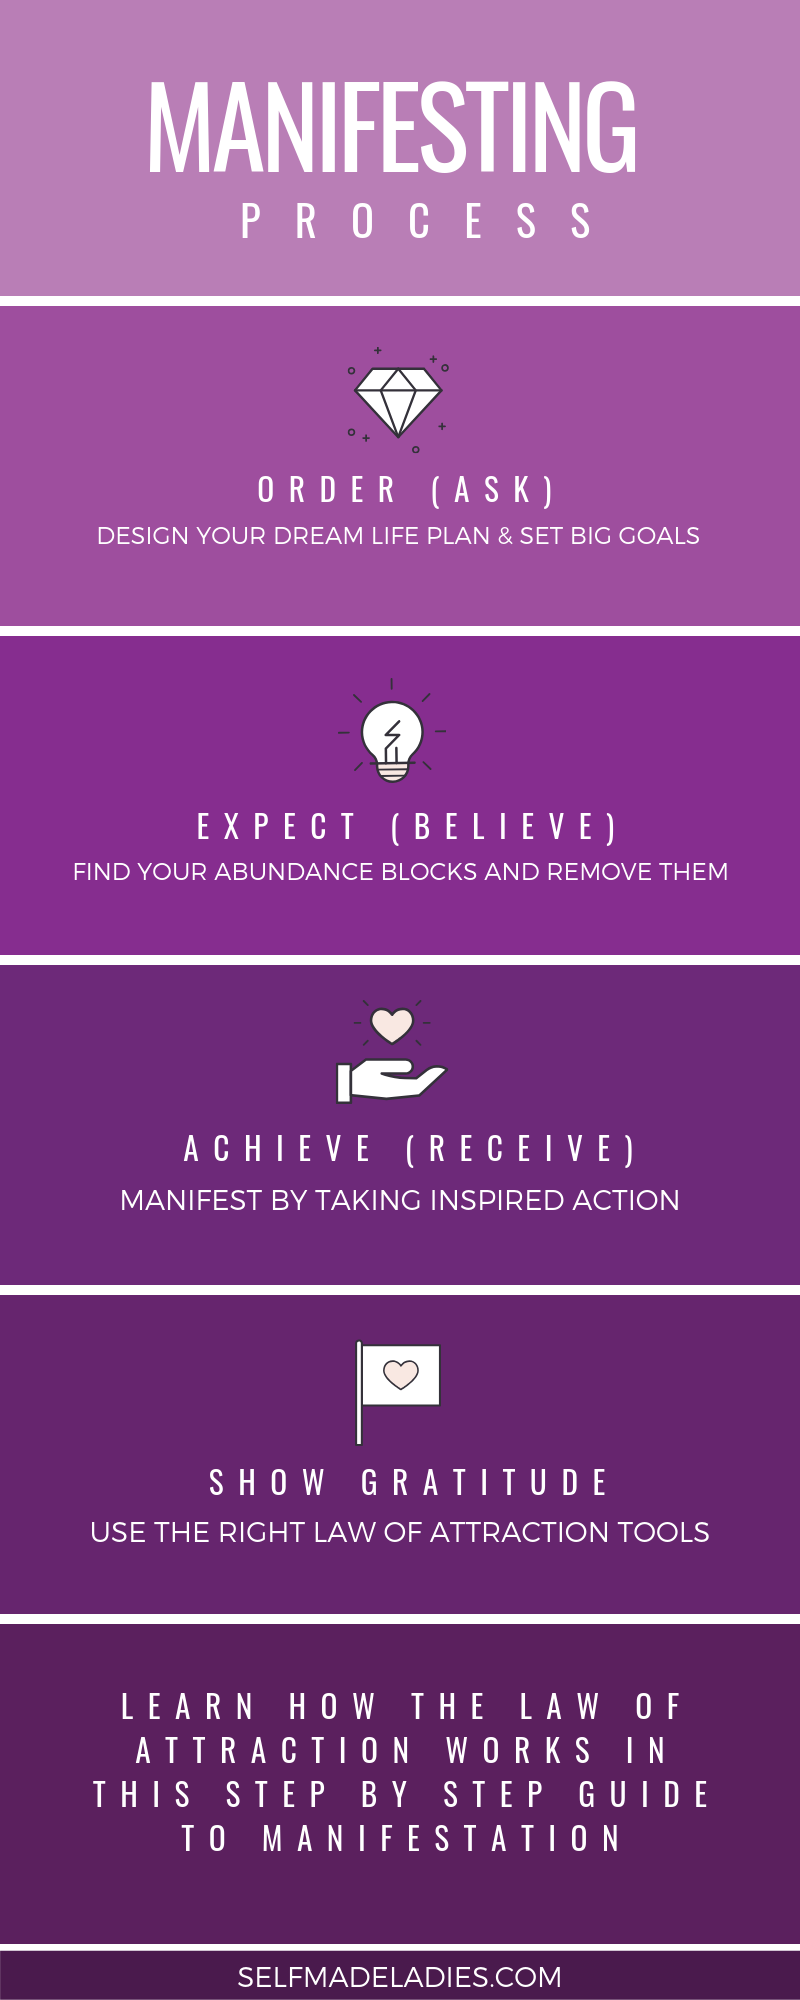 MANIFESTING 101 - the ultimate guide to the law of attraction